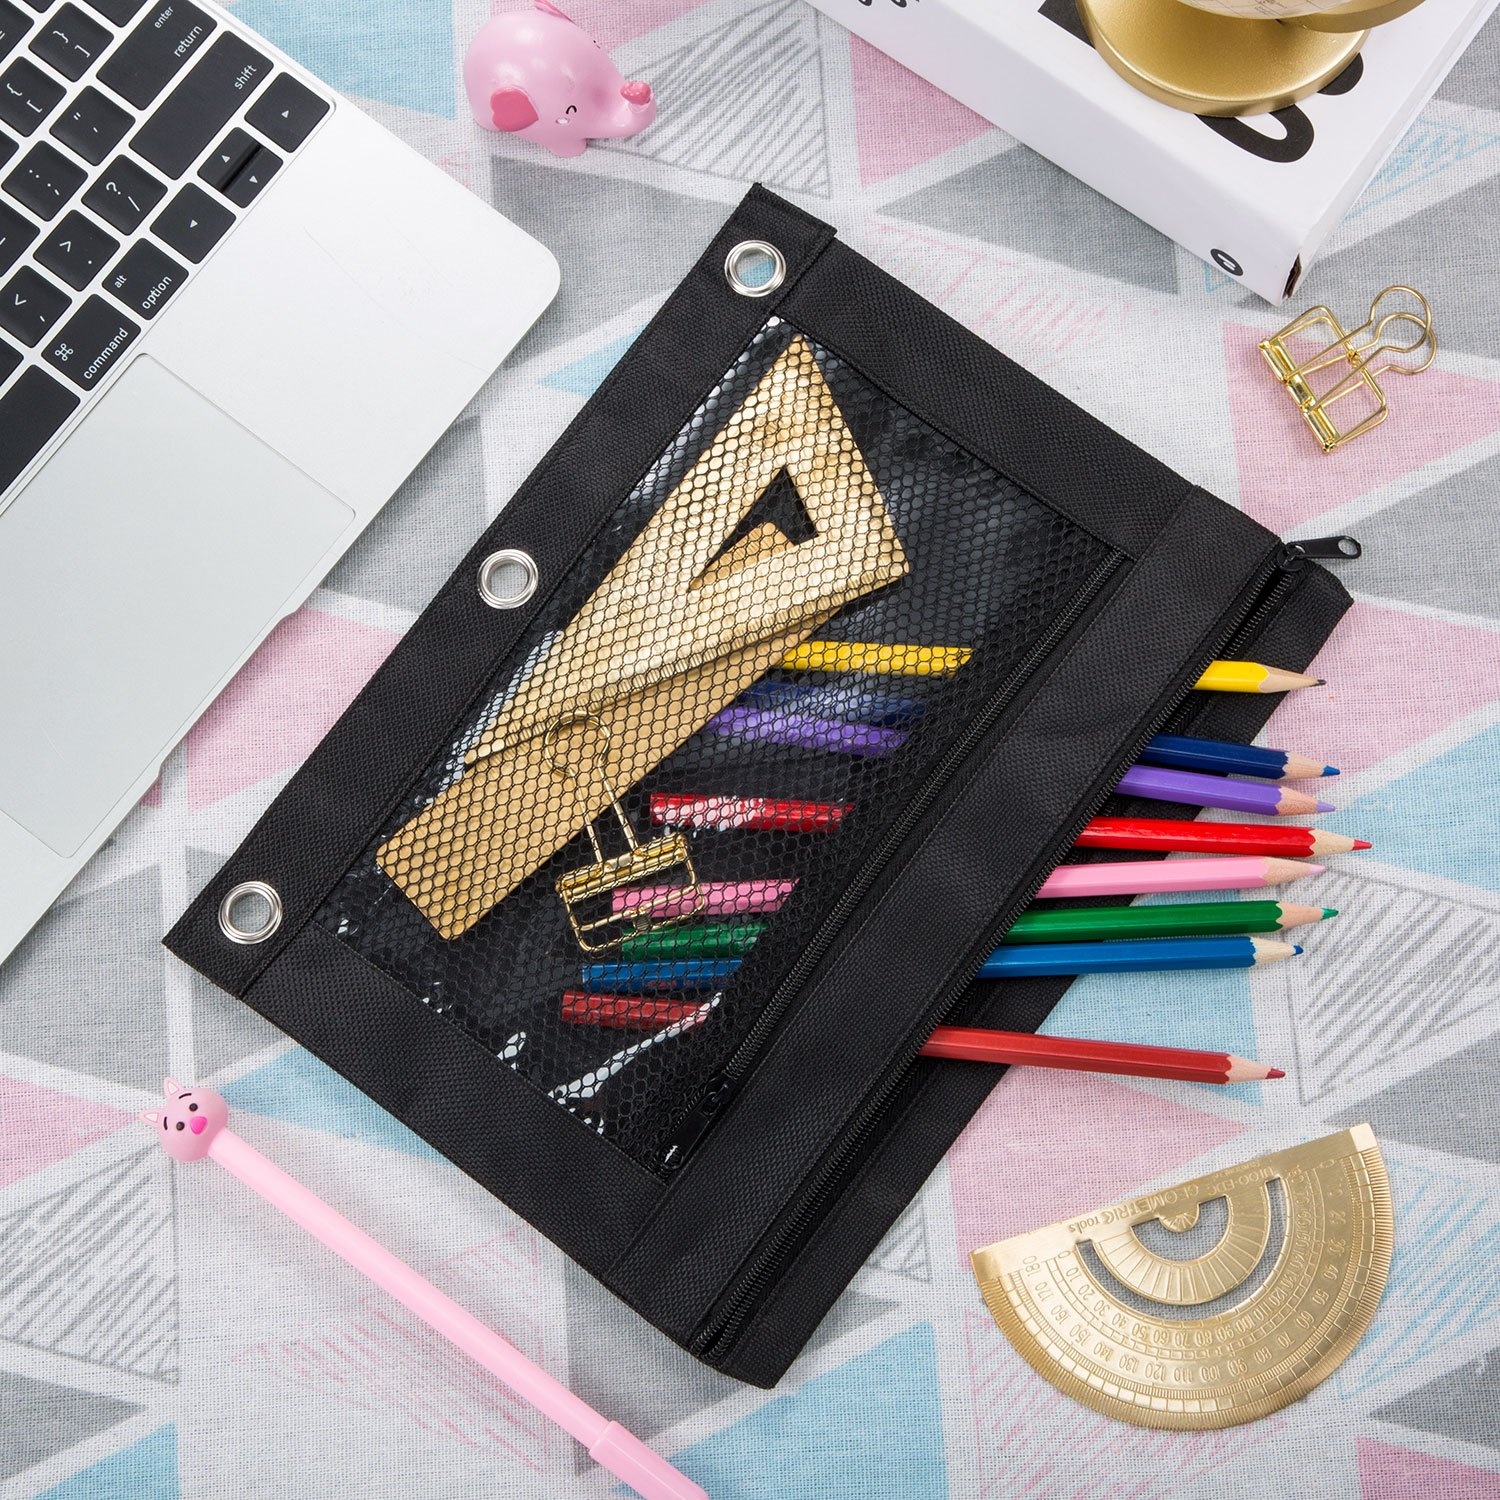 Tatuo 18 Pack 3 Ring Pencil Pouch with Double Mesh Window Zipper Pencil Pouch Bags Pencil Case (Black) by Tatuo (Image #3)